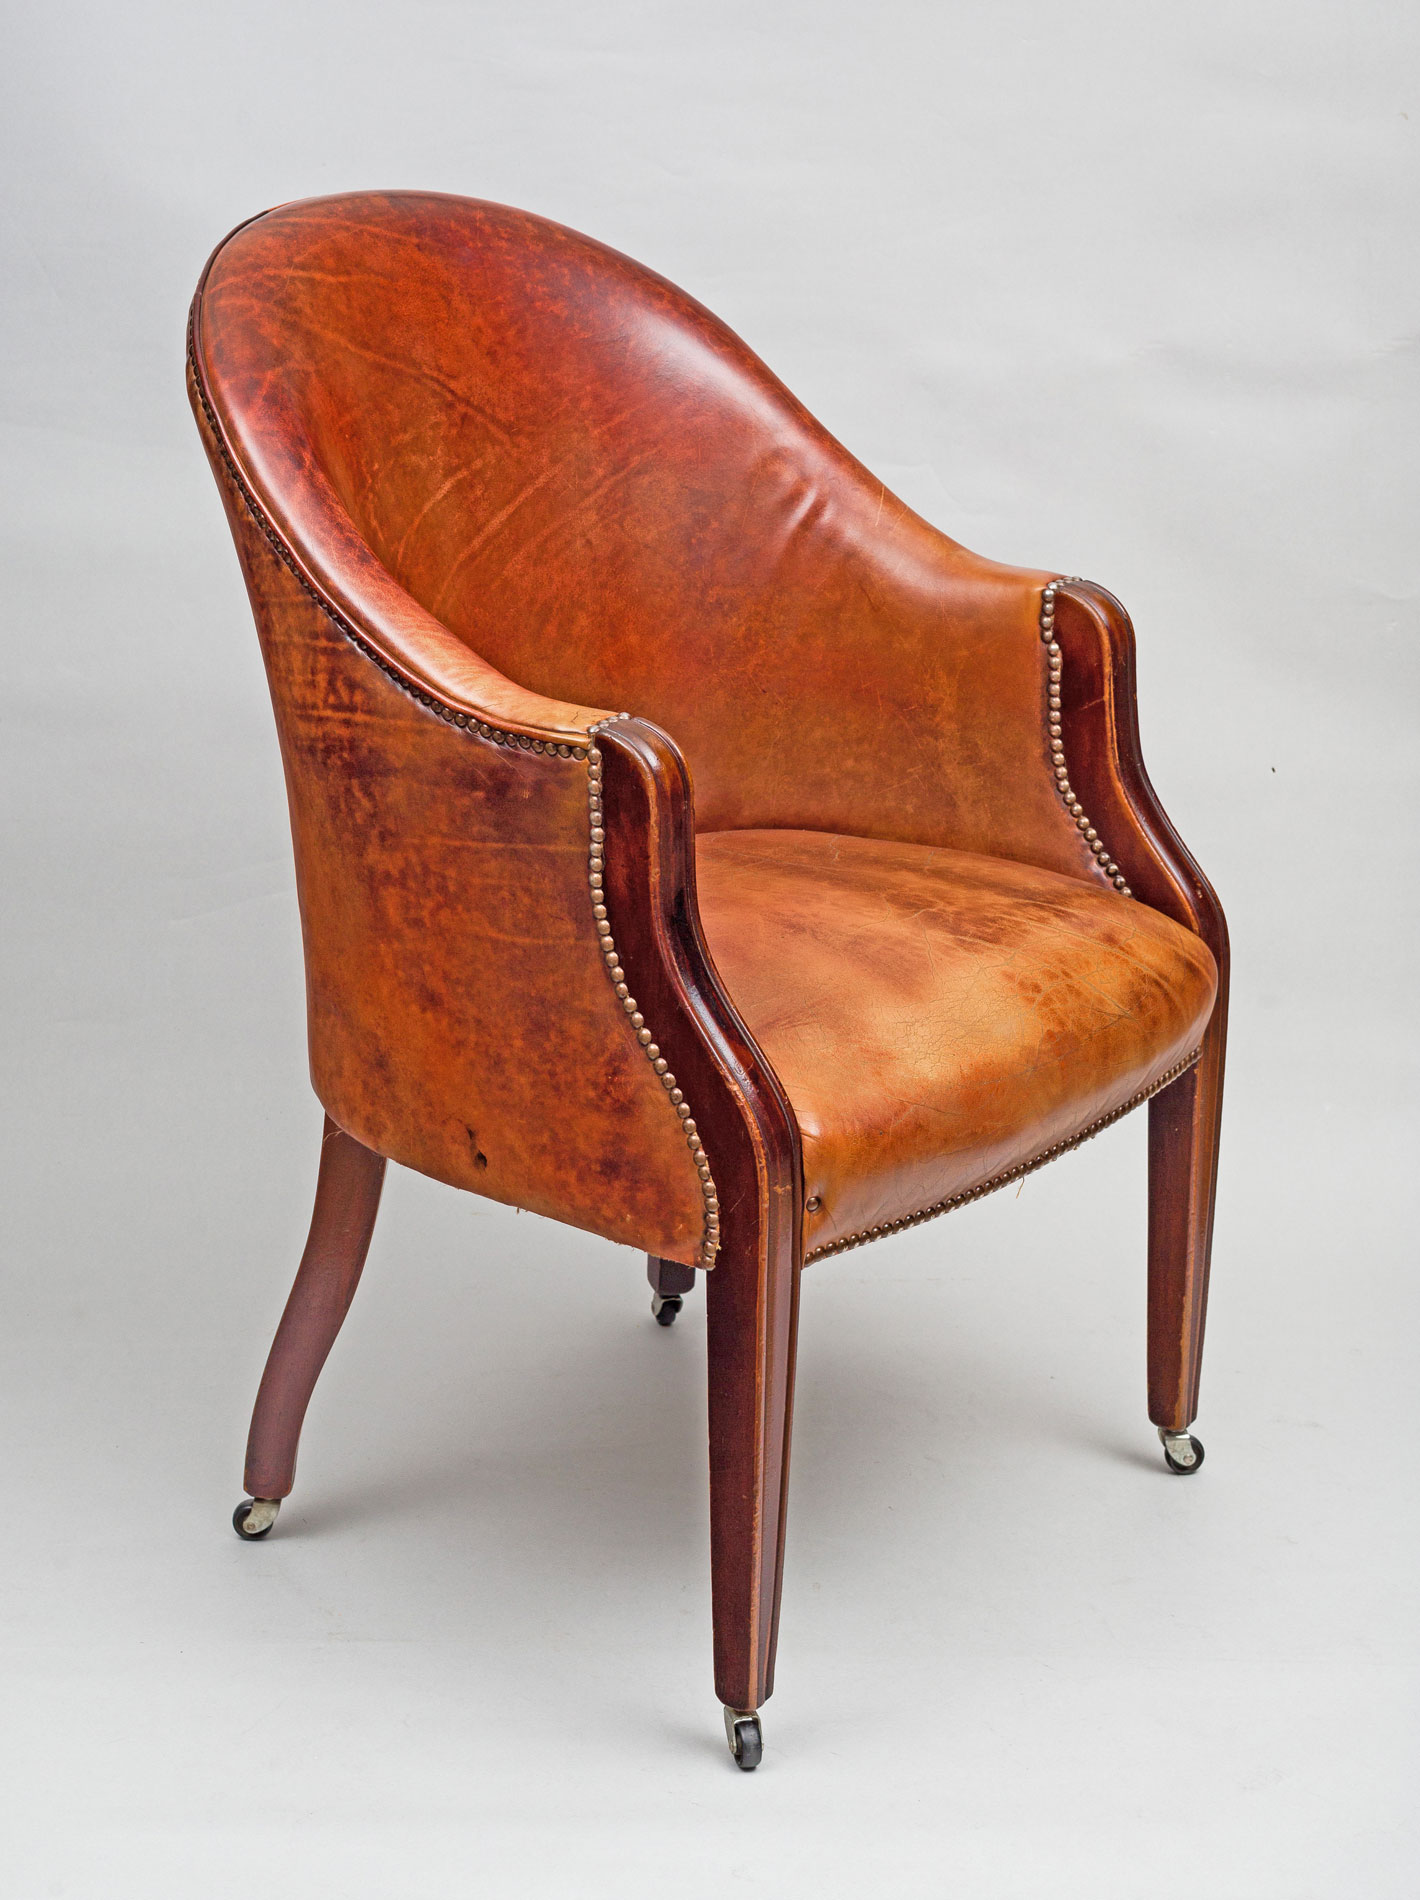 ... Edwardian Leather Tub Chair ... - Antique Edwardian Tub Chair Antique Mahogany Leather Tub Chair